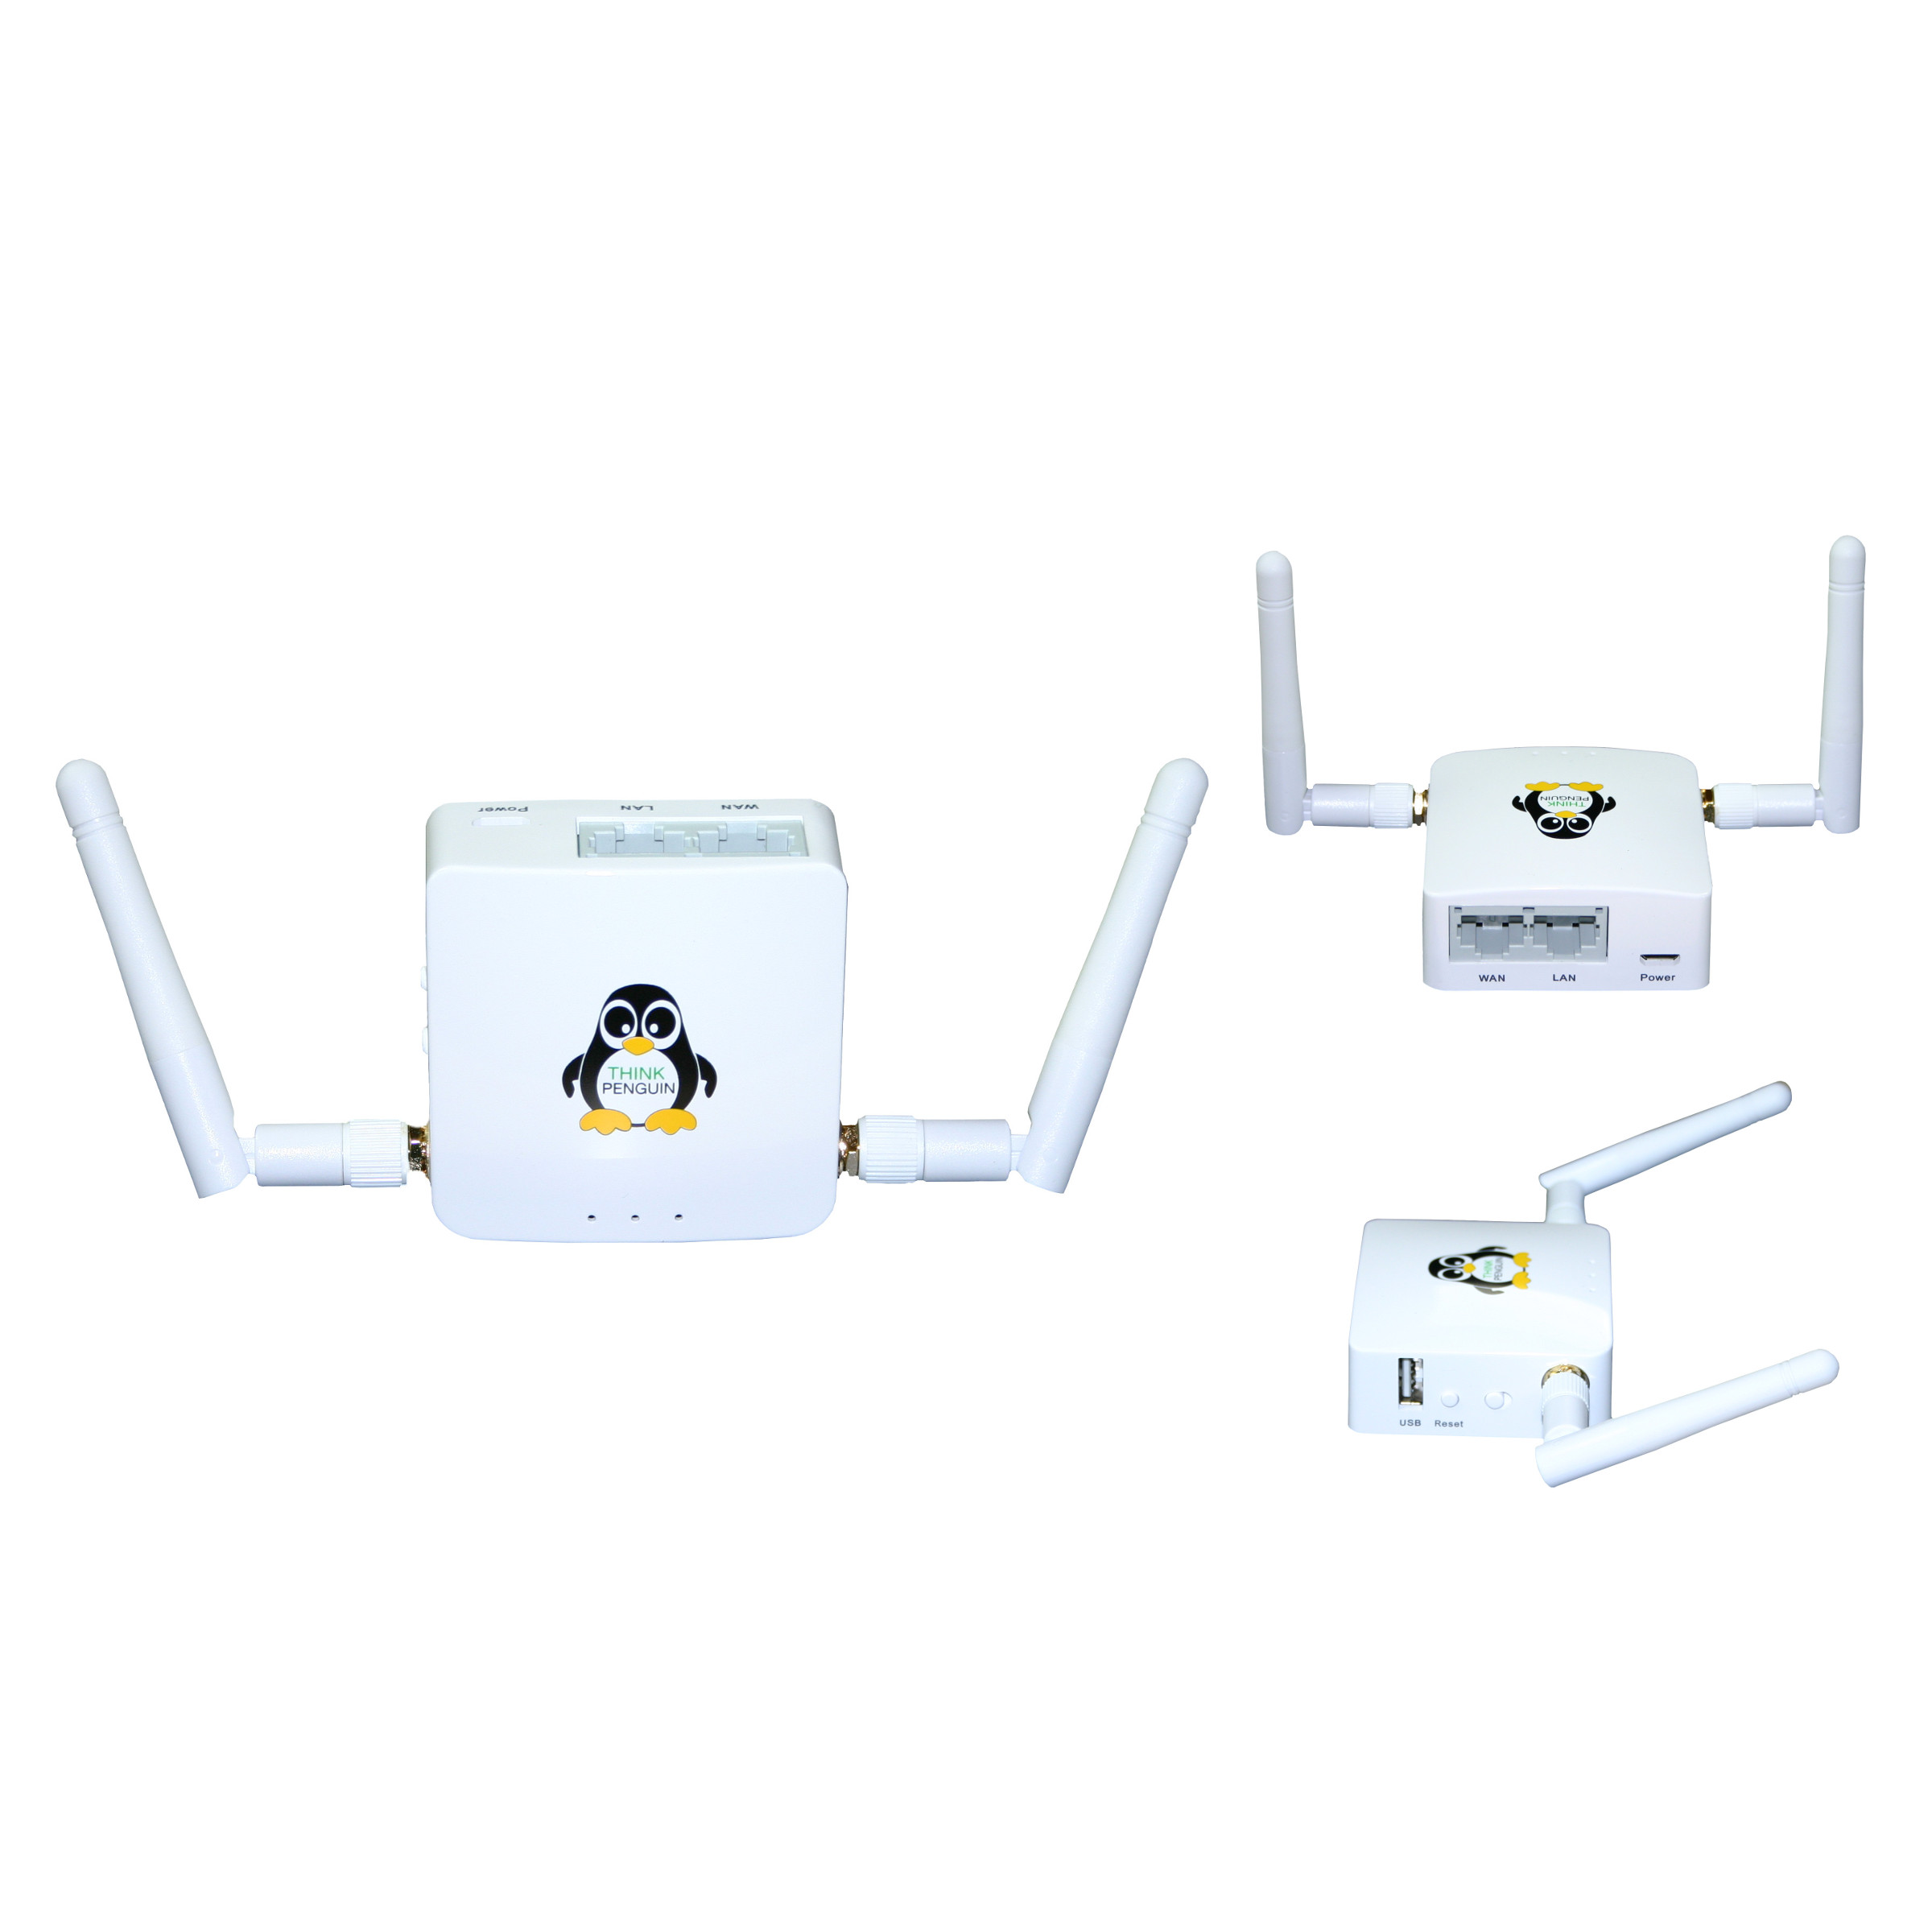 ThinkPenguin mini-routers